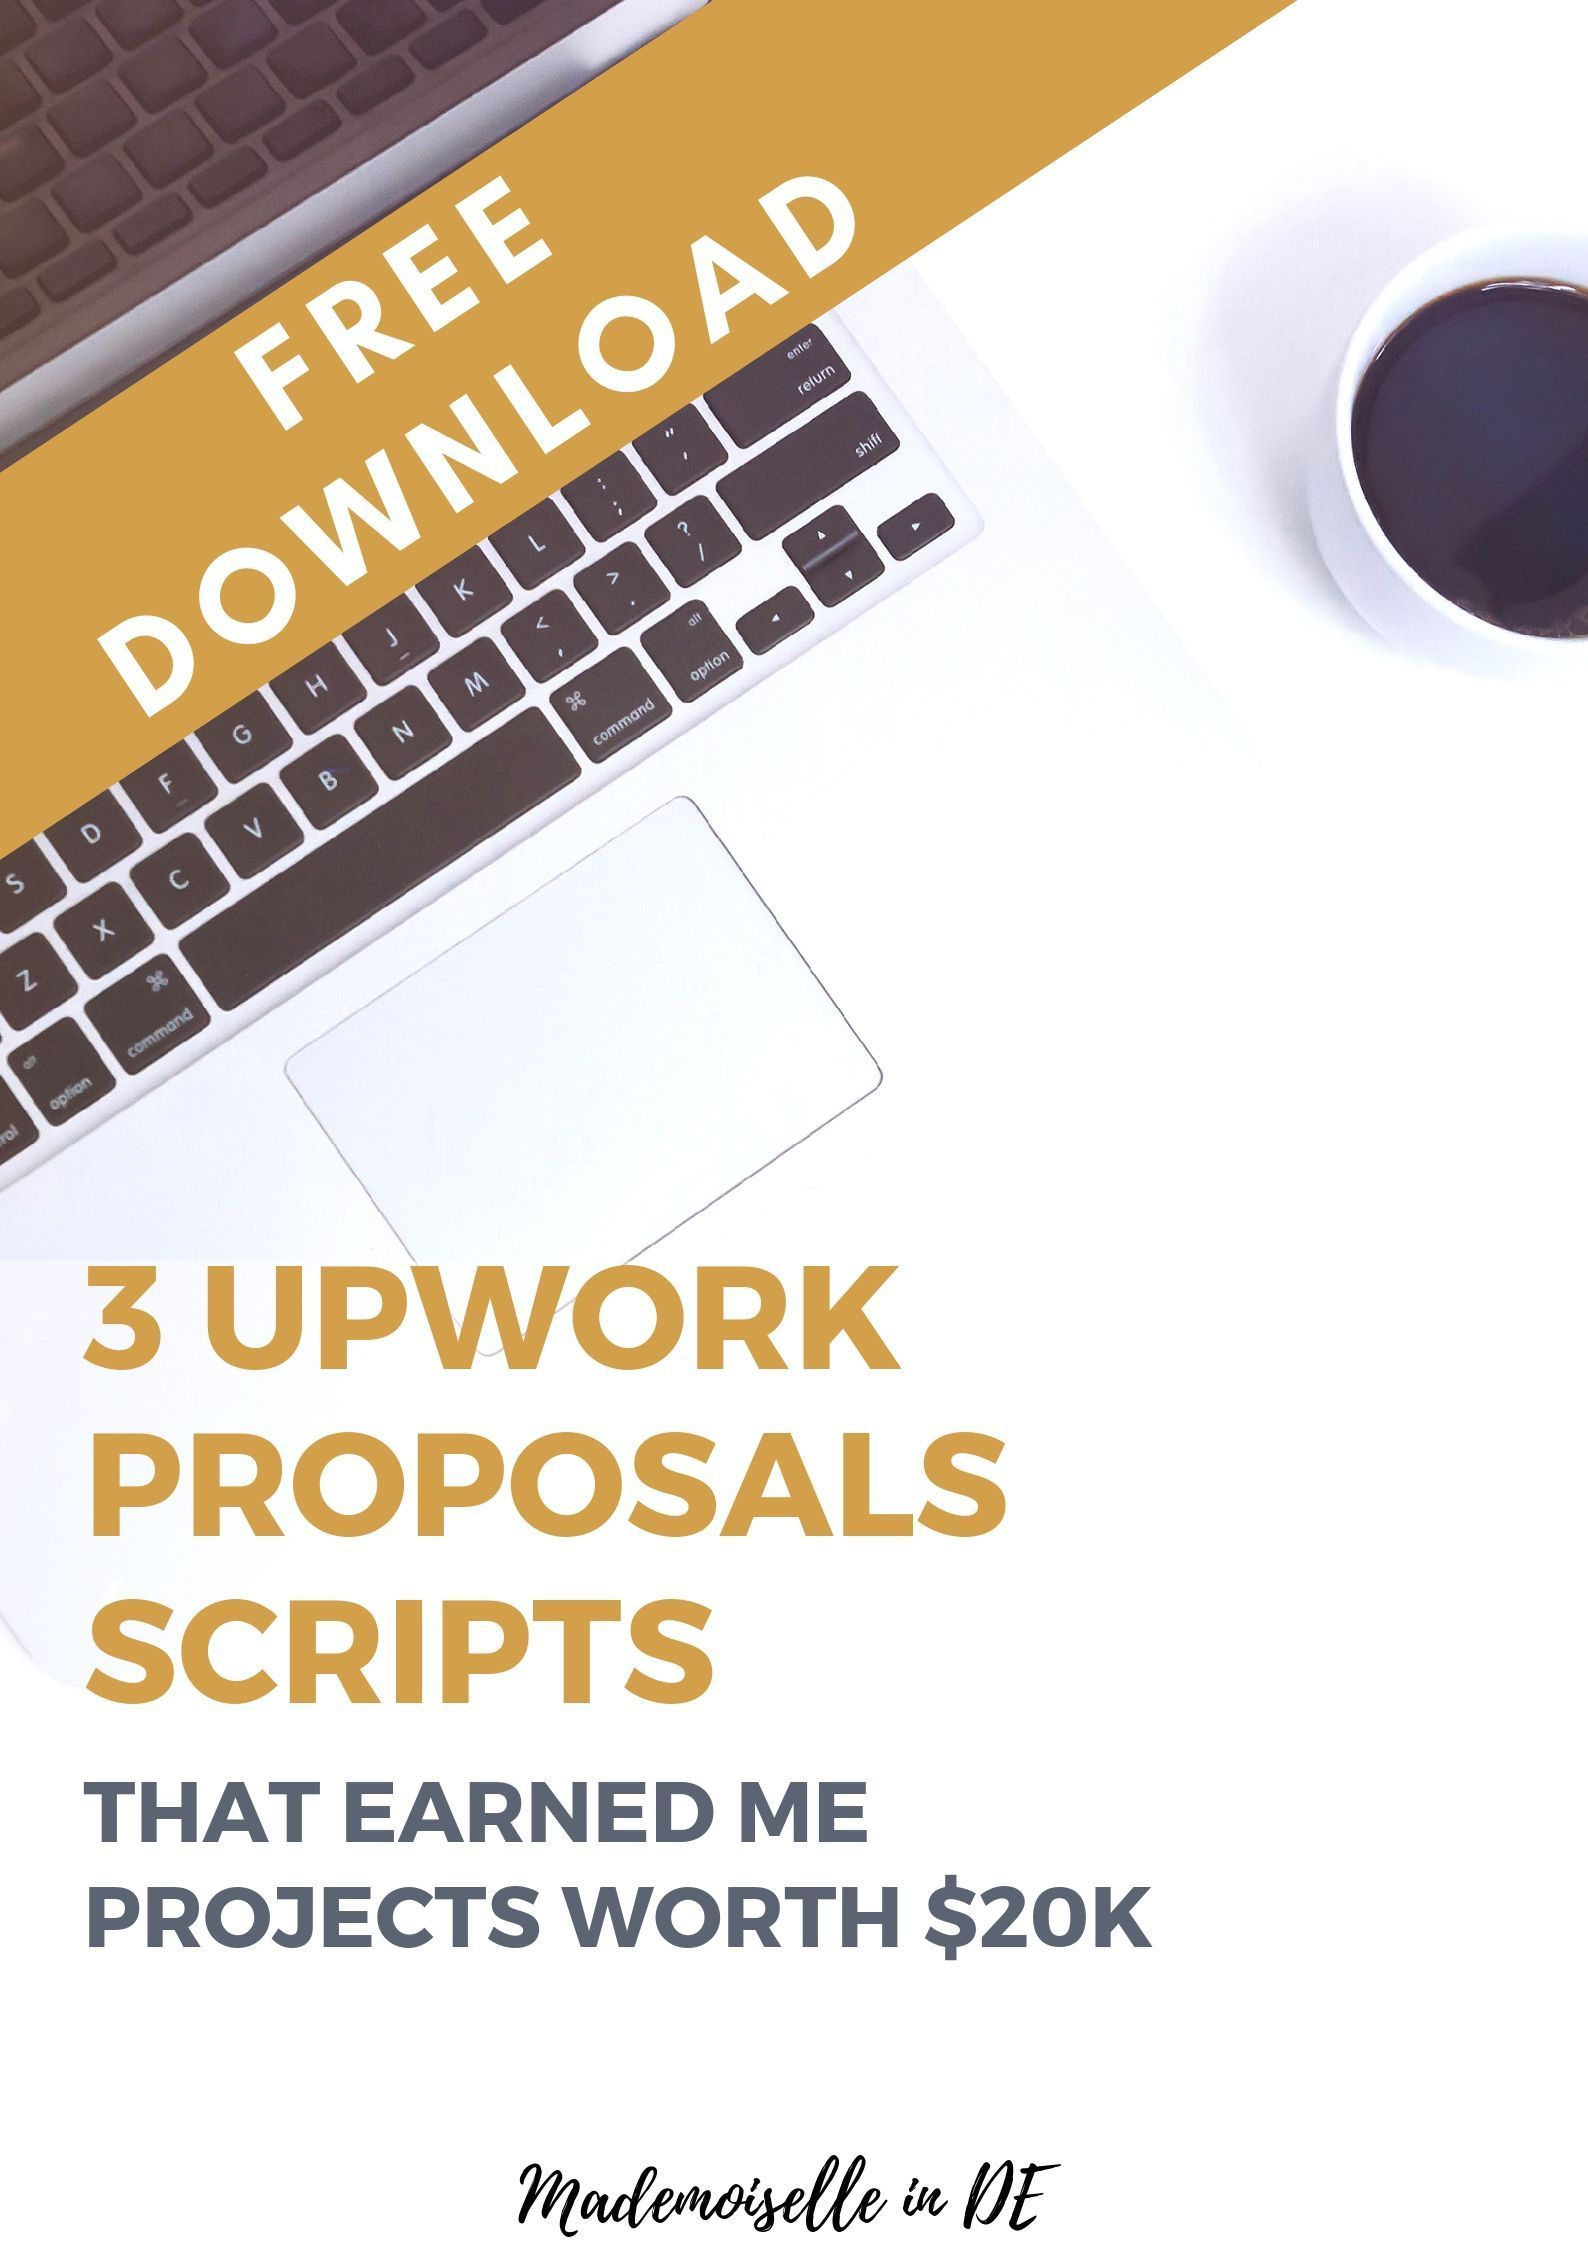 In this post, I'm sharing some Upwork proposal tips that I